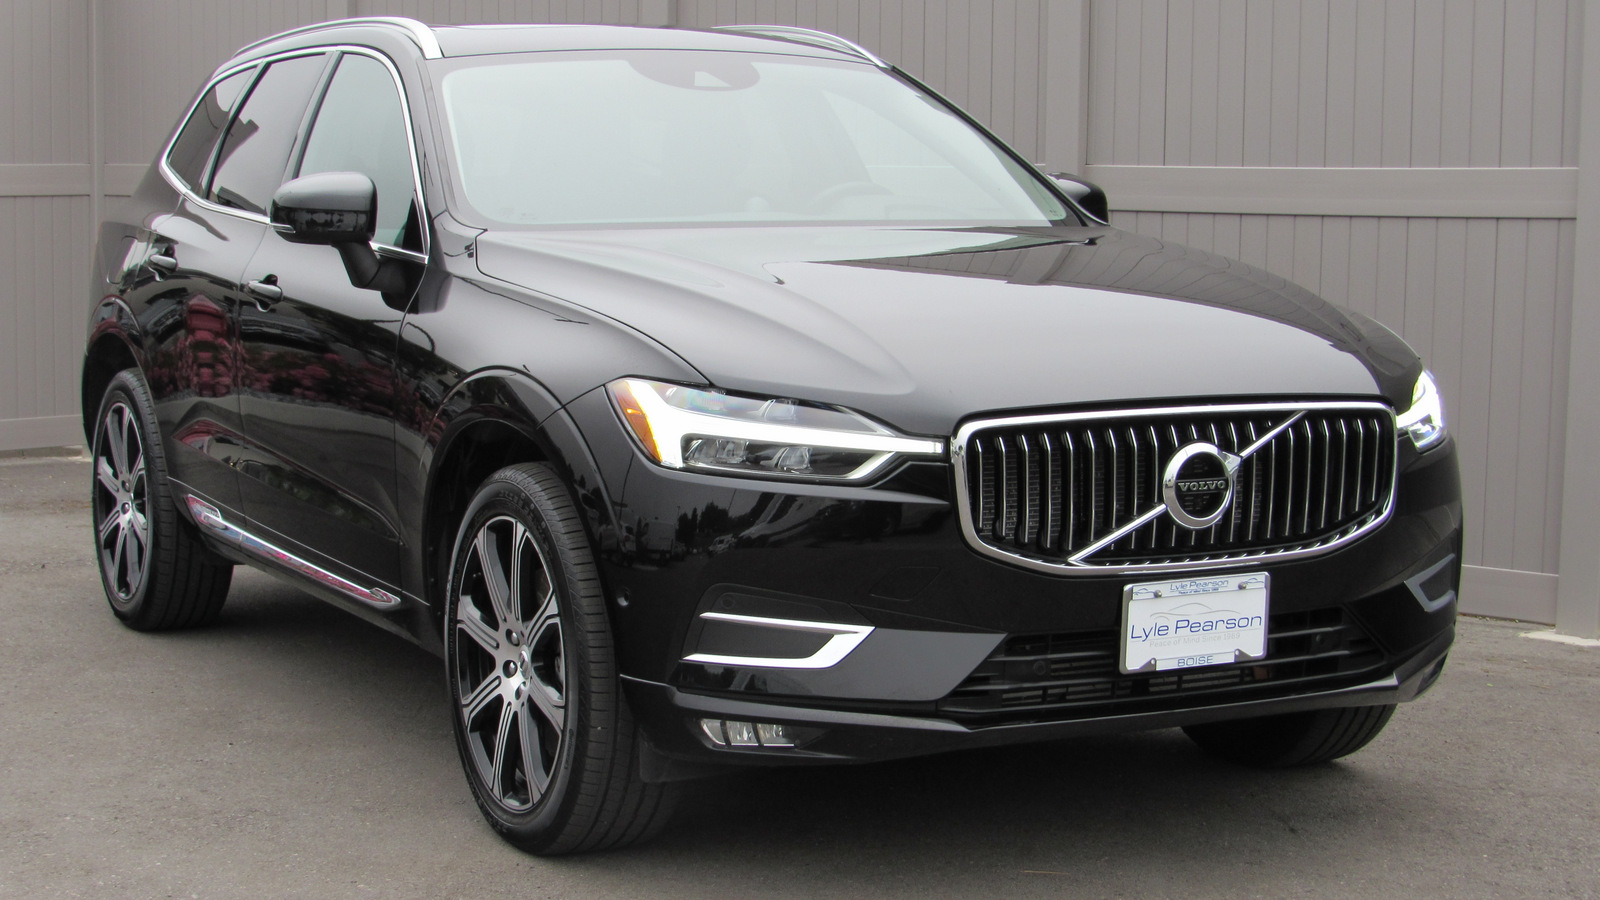 Pre-Owned 2018 Volvo XC60 T6 AWD Inscription